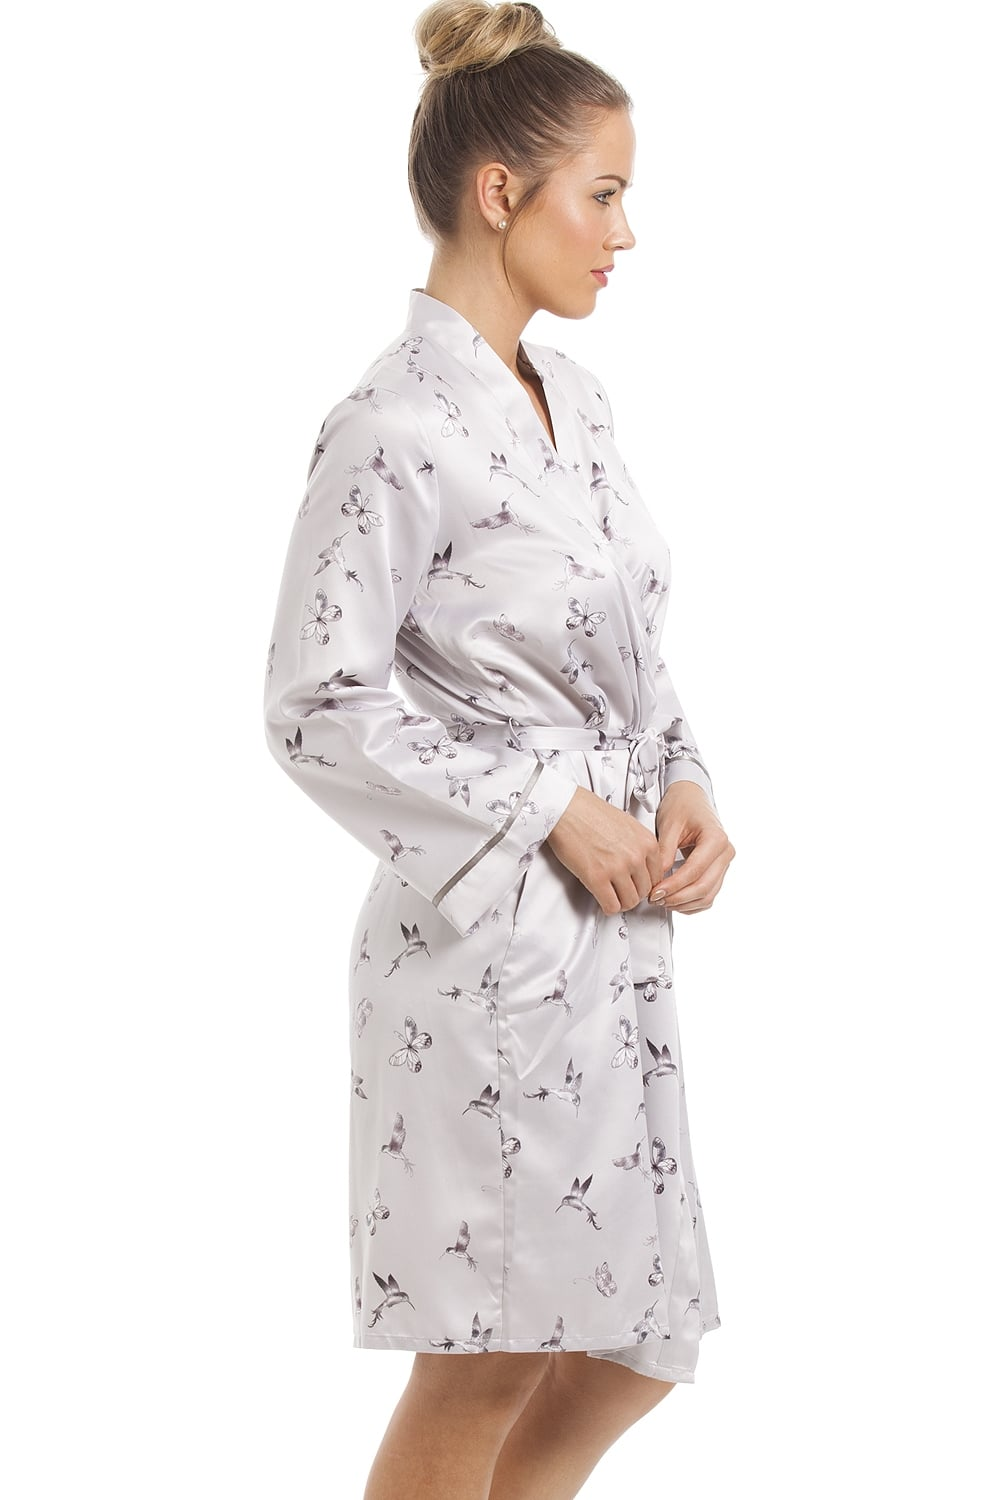 Camille Womens Silver Humming Bird And Butterfly Full Length Satin Pyjama Set